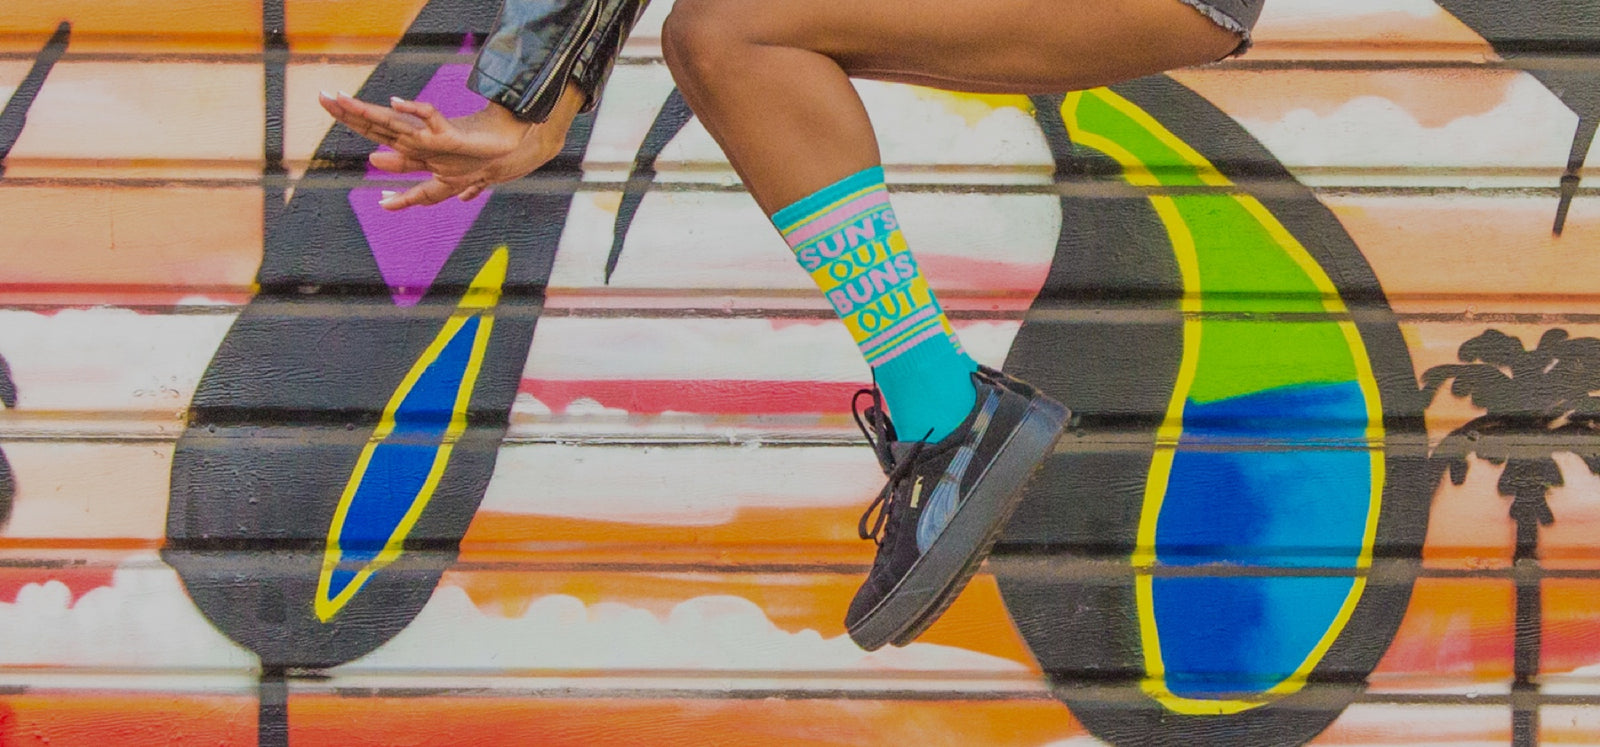 Coolest Sock Store in San Diego! Crazy Socks are our specialty!